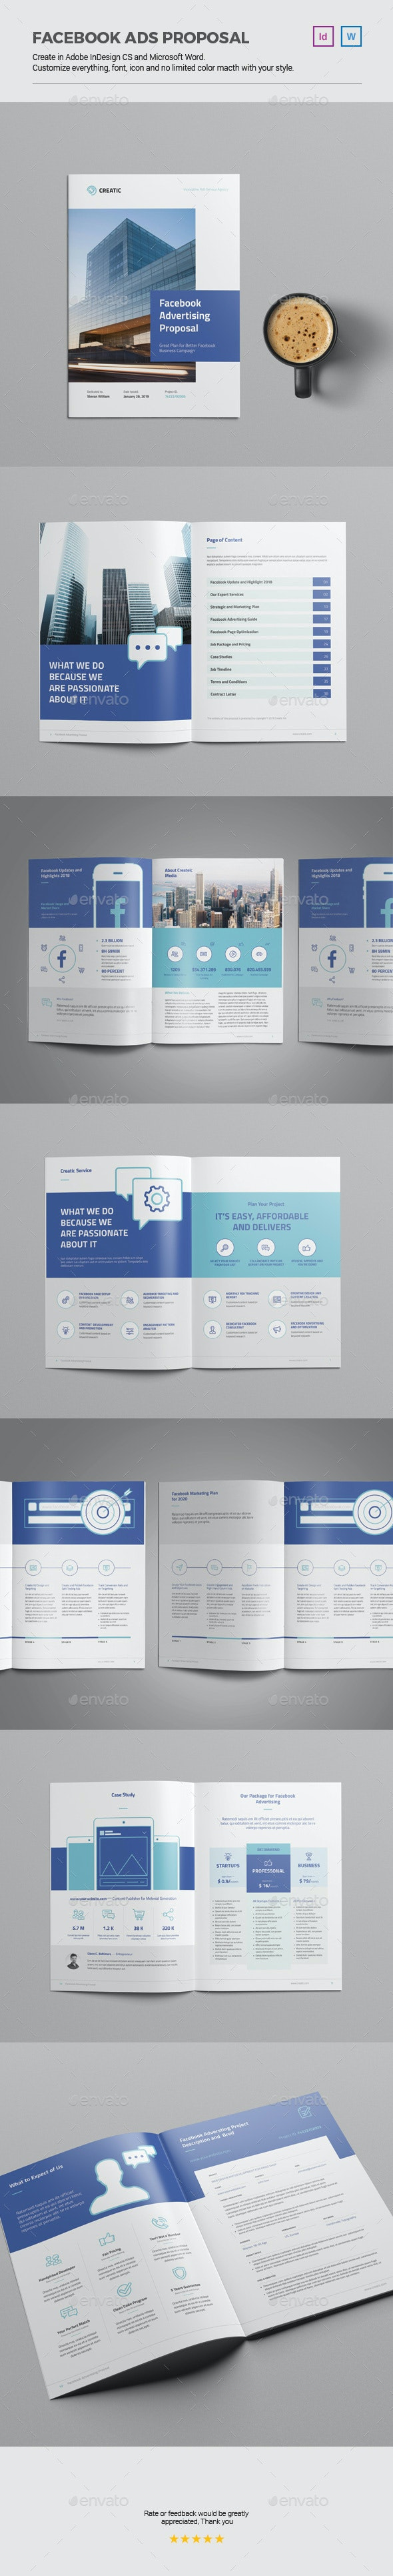 Facebook Advertising Proposal - Proposals & Invoices Stationery